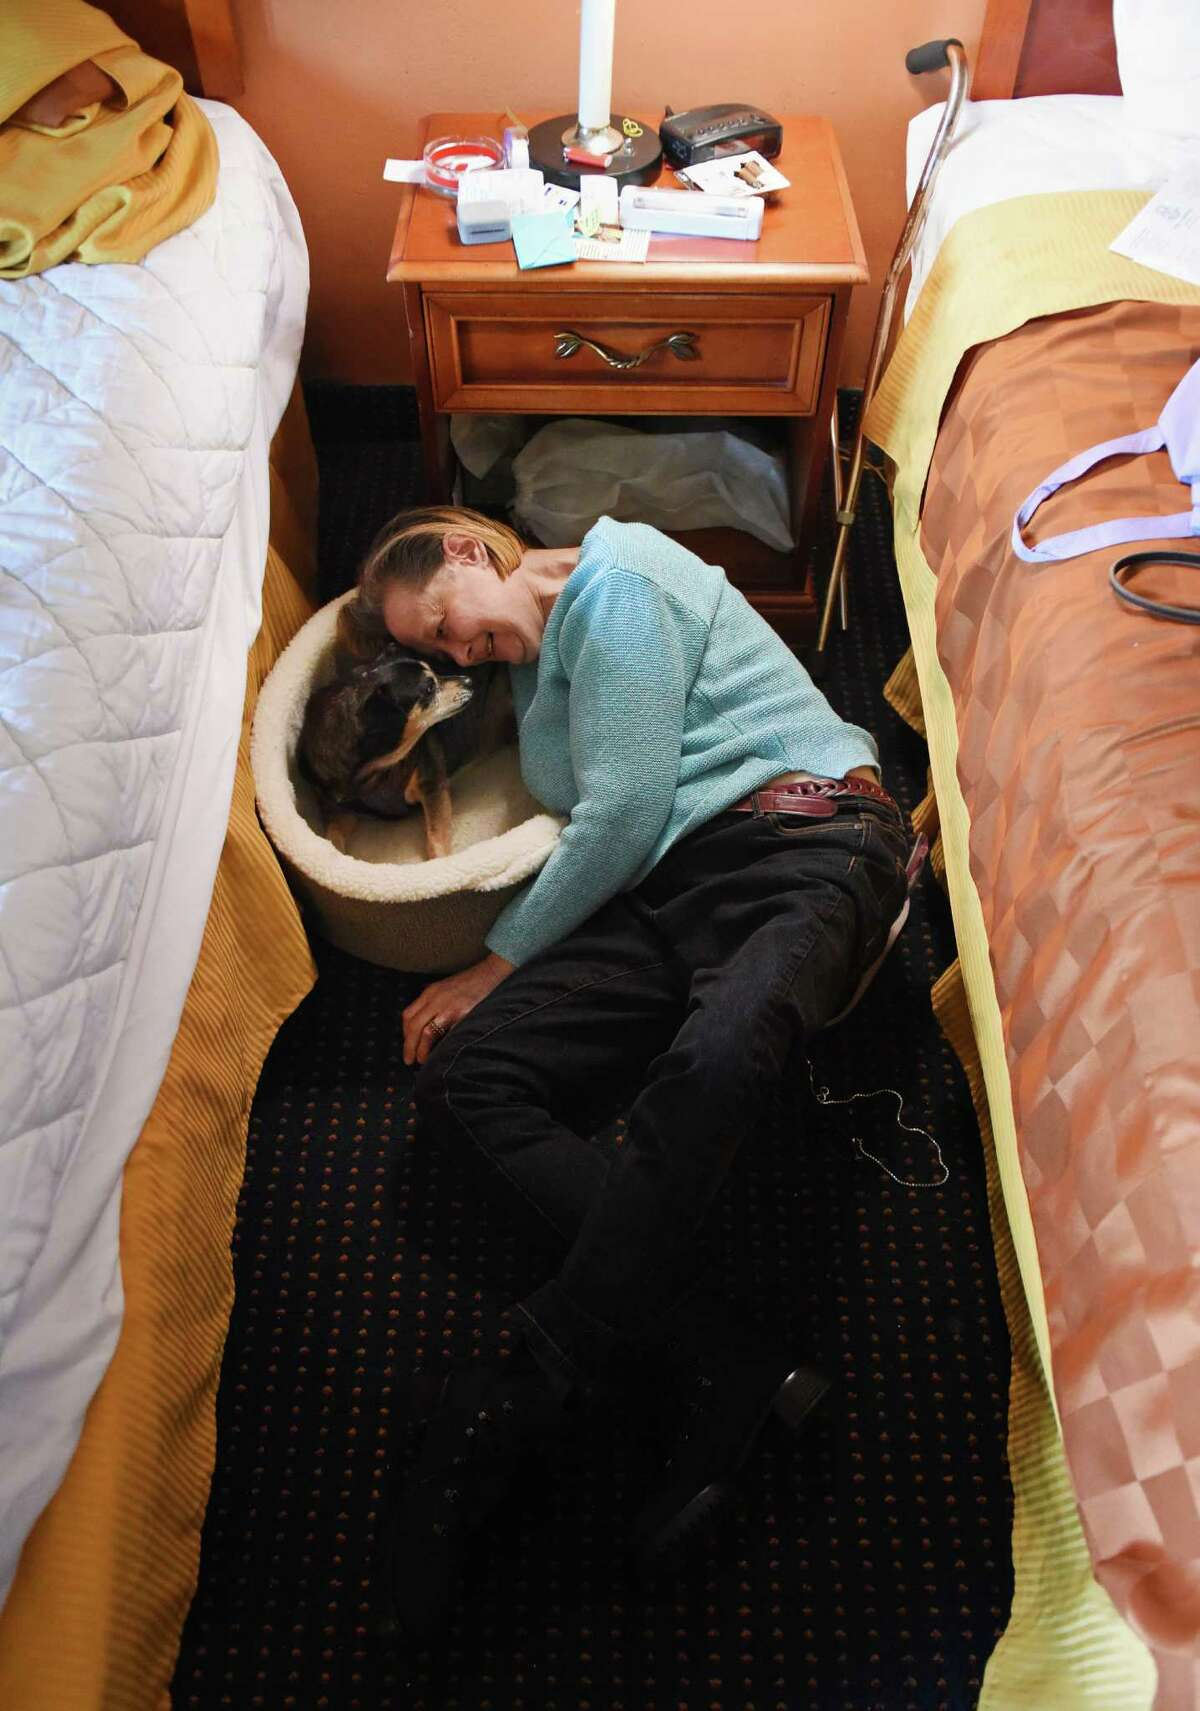 Denise Sadowsky cuddles with her dog, Cheeky, between hotel beds in her temporary residence at the Americas Best Value Inn in Stamford.